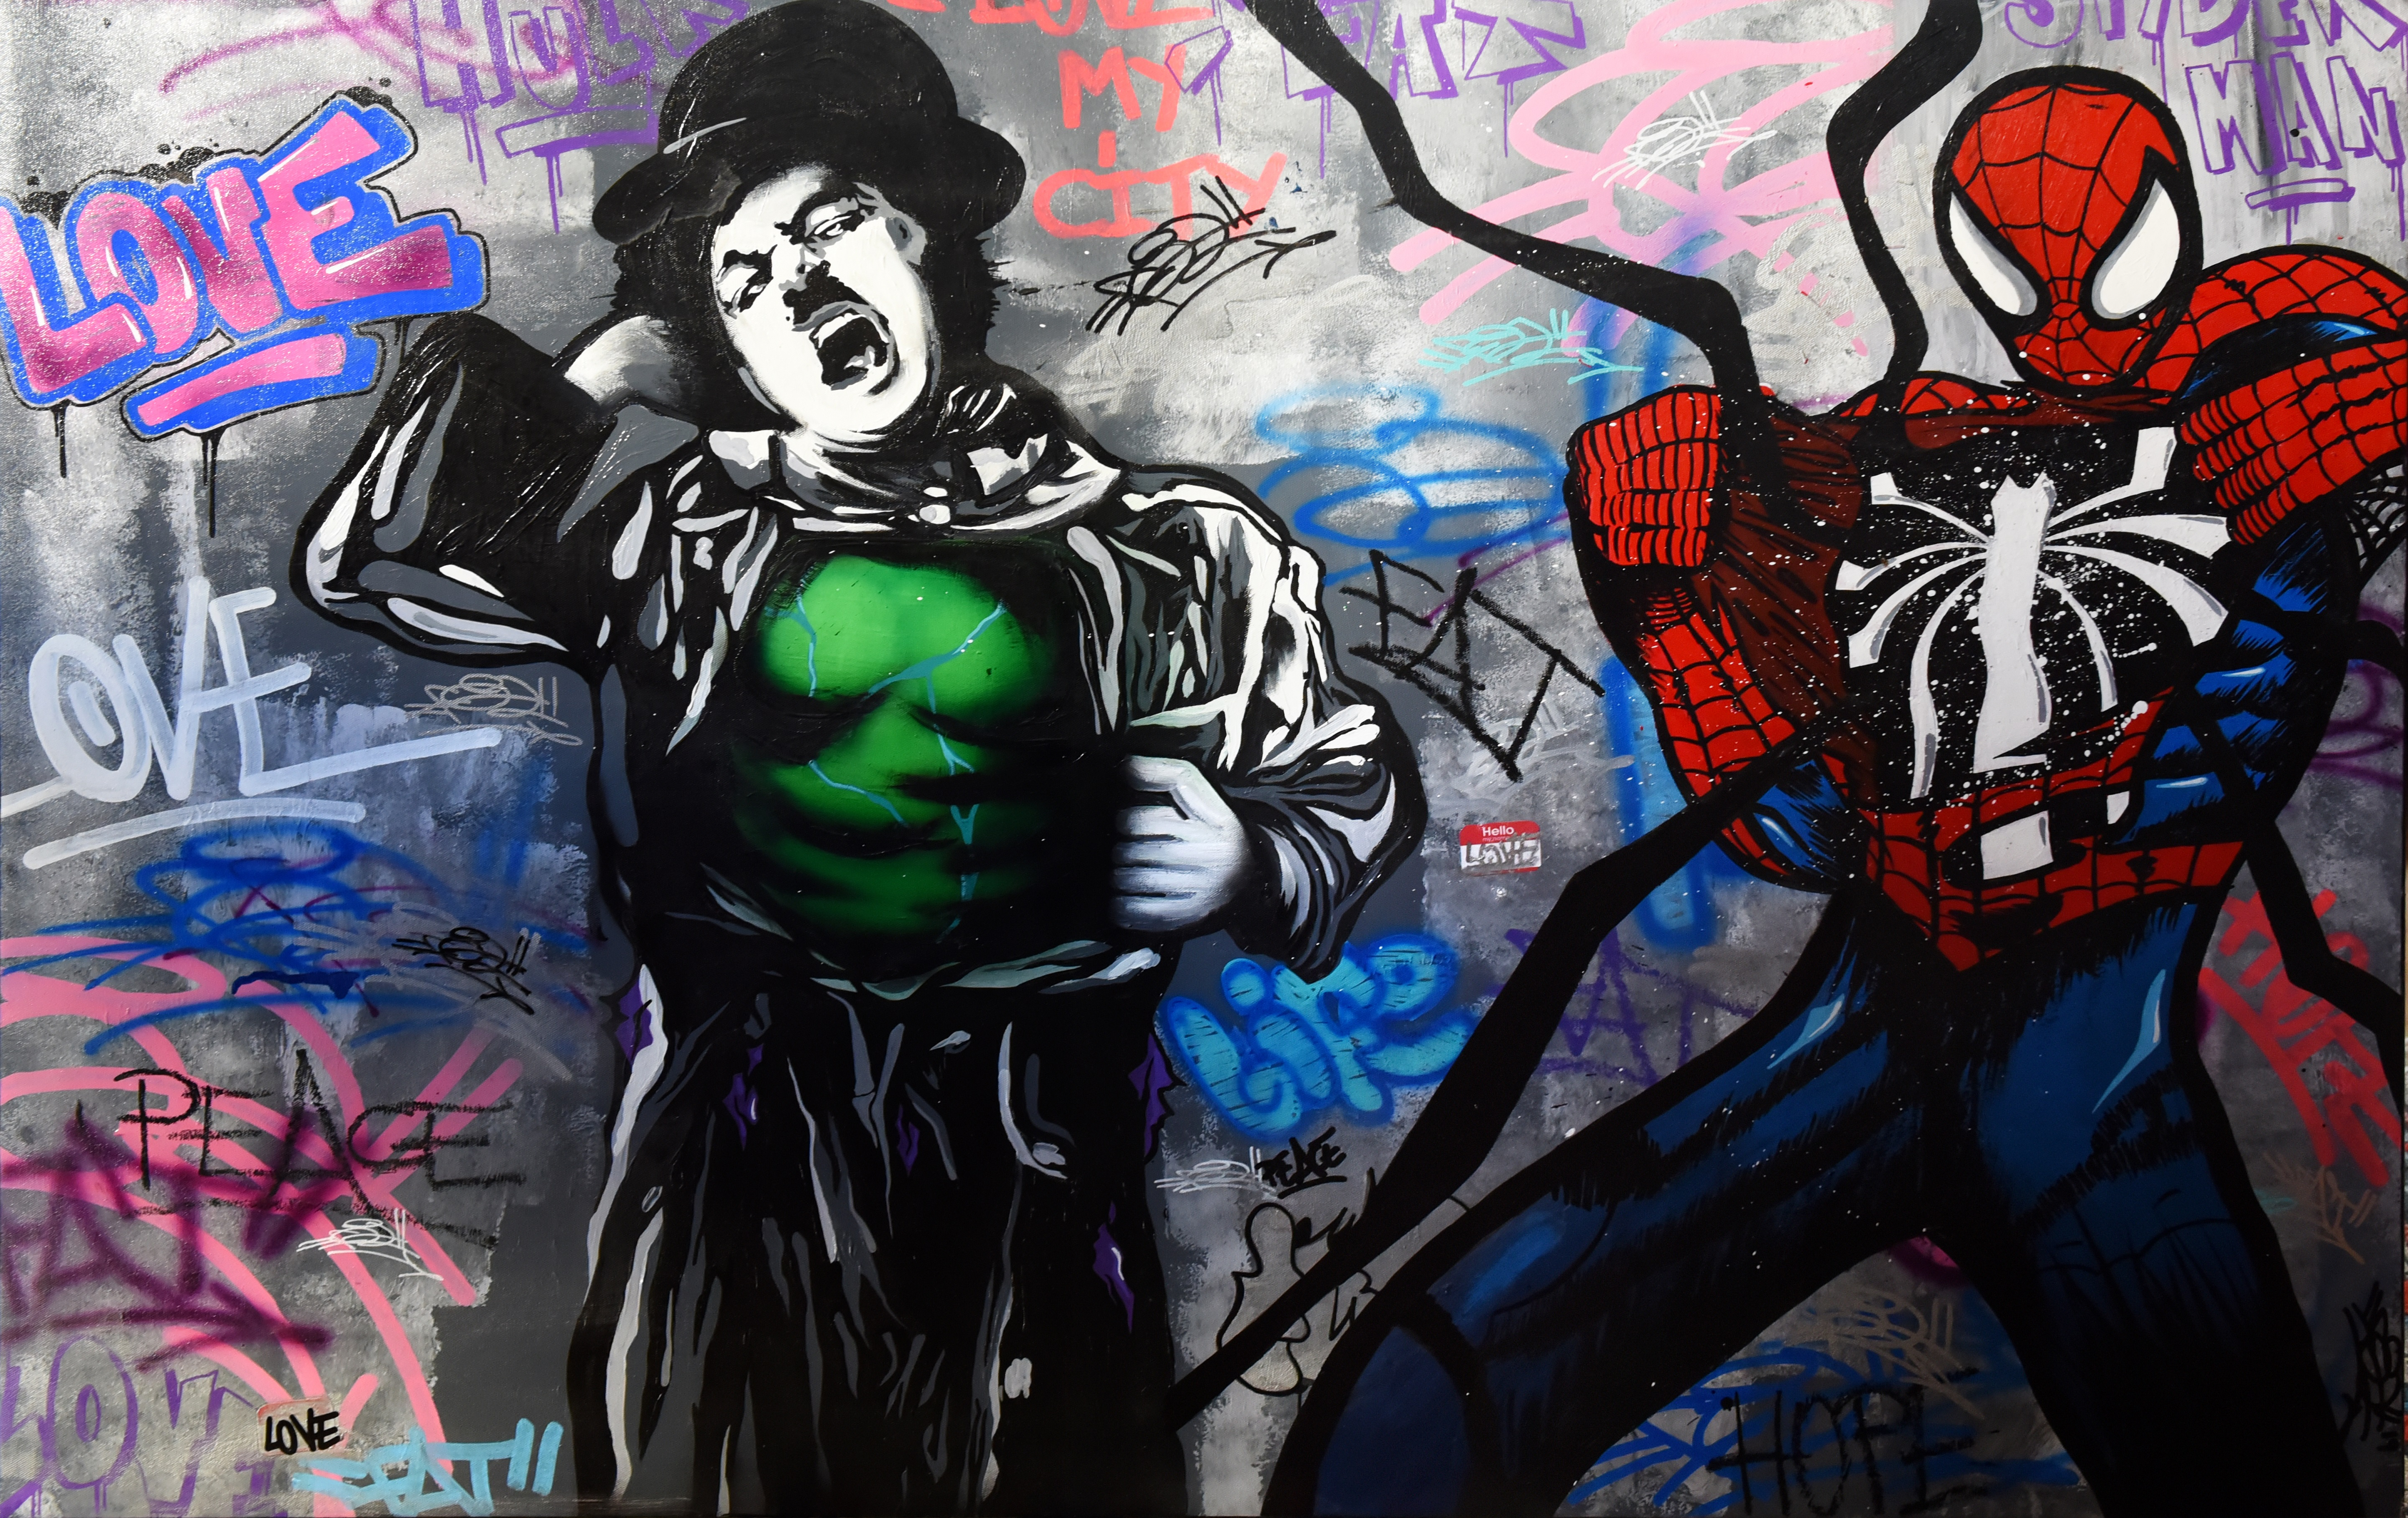 CHAPLIN VS HULK VS SPIDERMAN 89X130